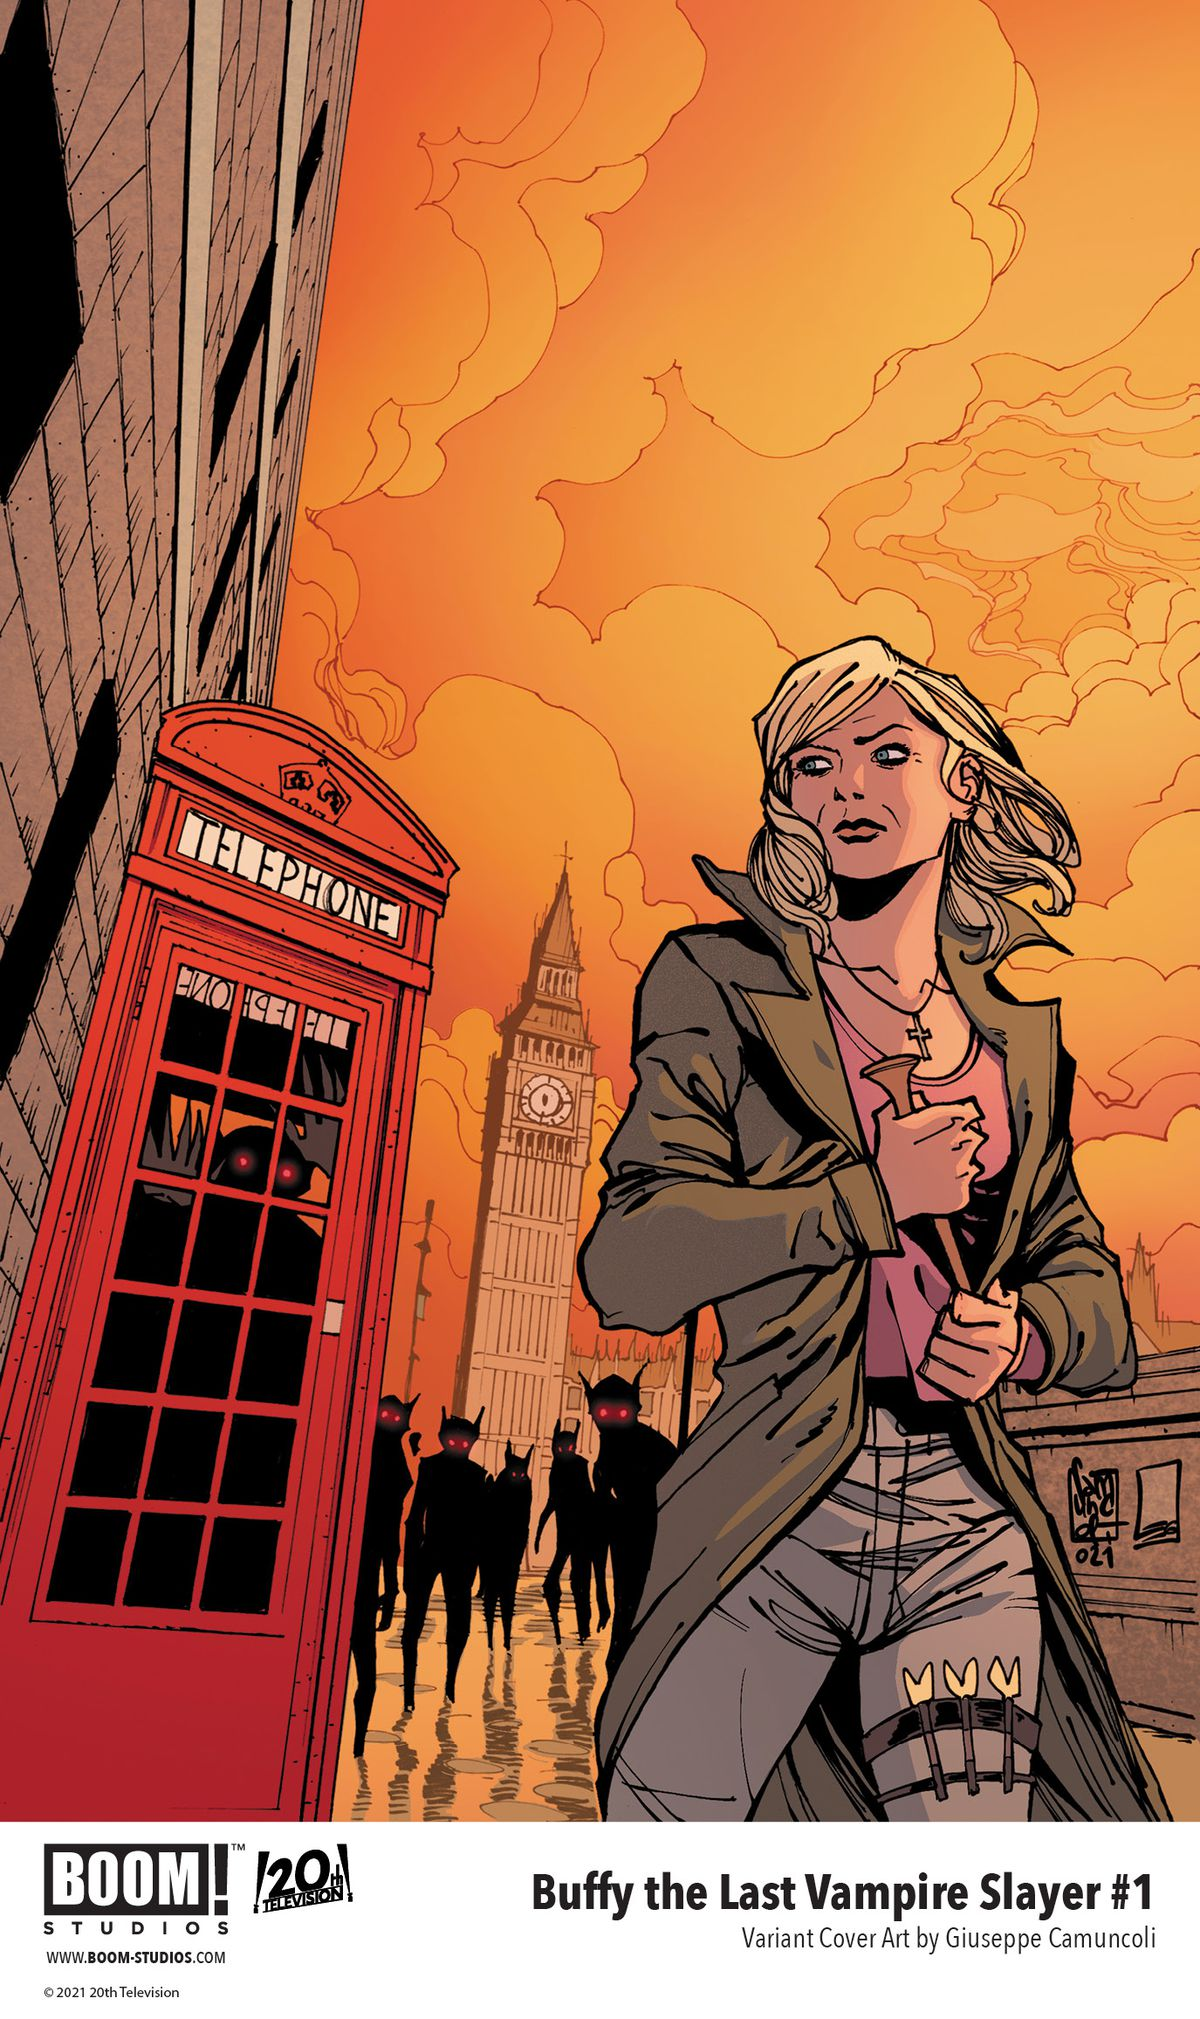 Buffy The Last Vampire Slayer - a variant cover, showing an older Buffy Summers hustle through London as she is stalked by scary vampires.